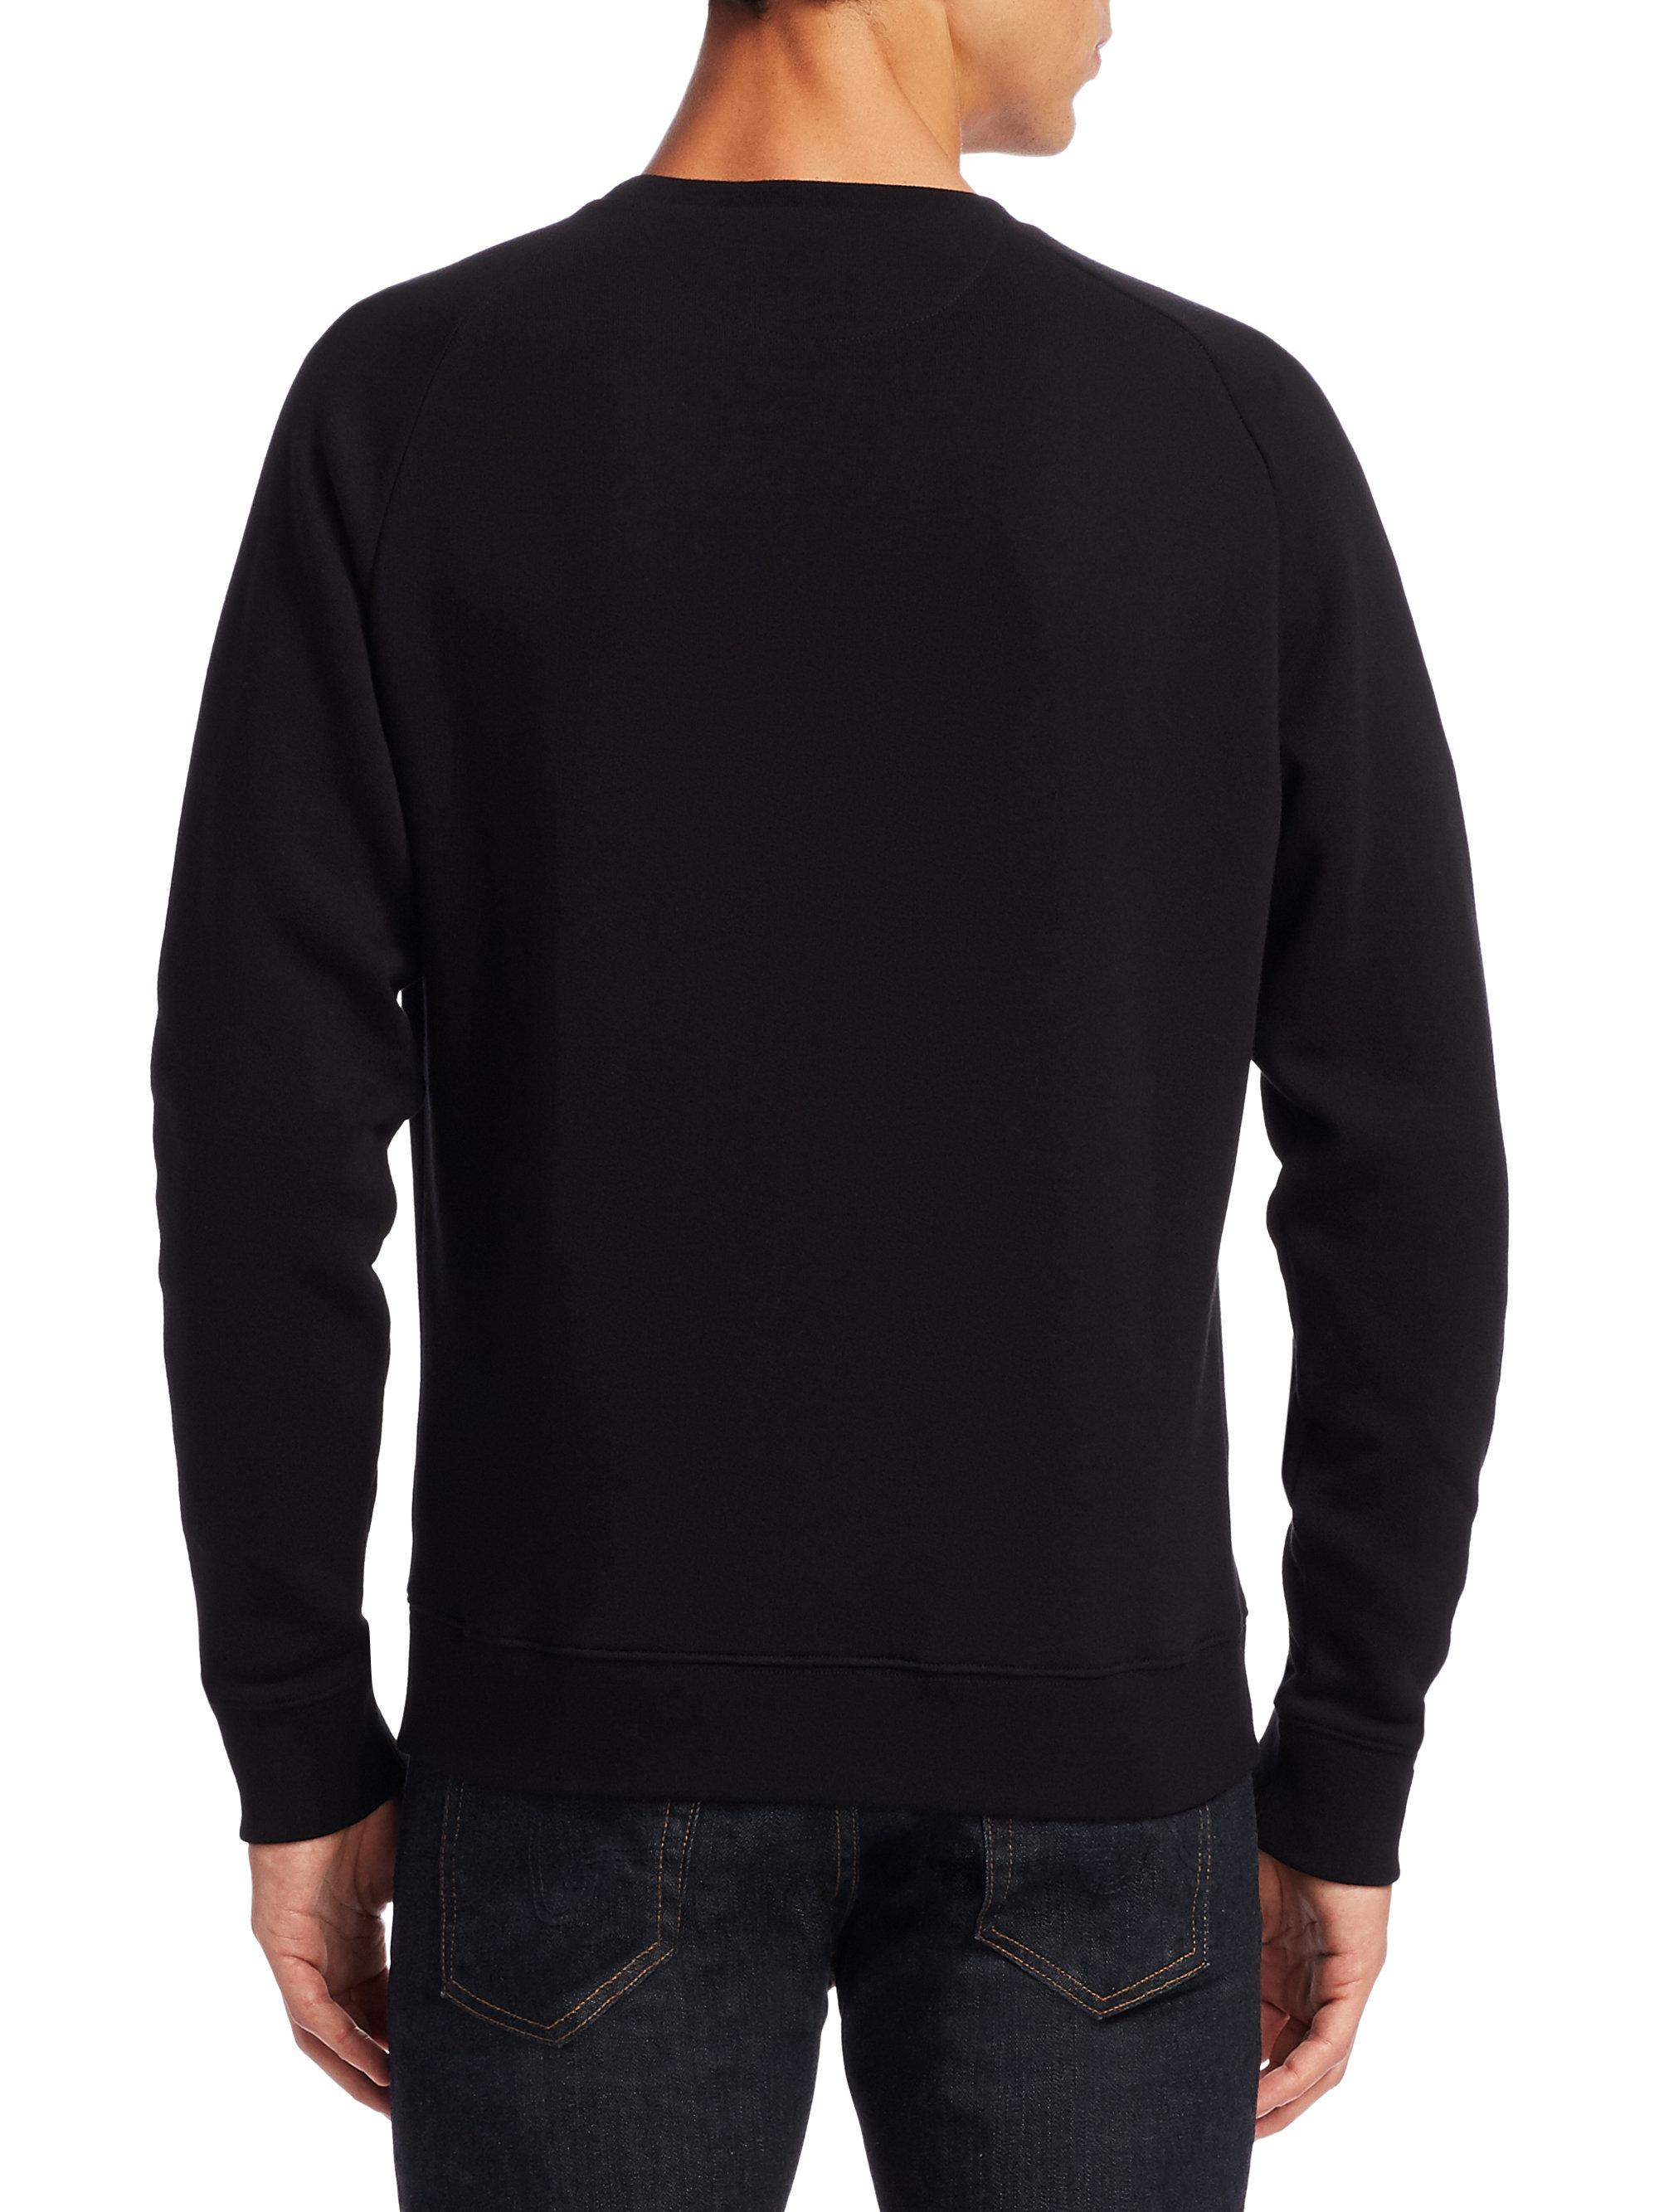 Ralph lauren bear applique fleece sweatshirt in black for